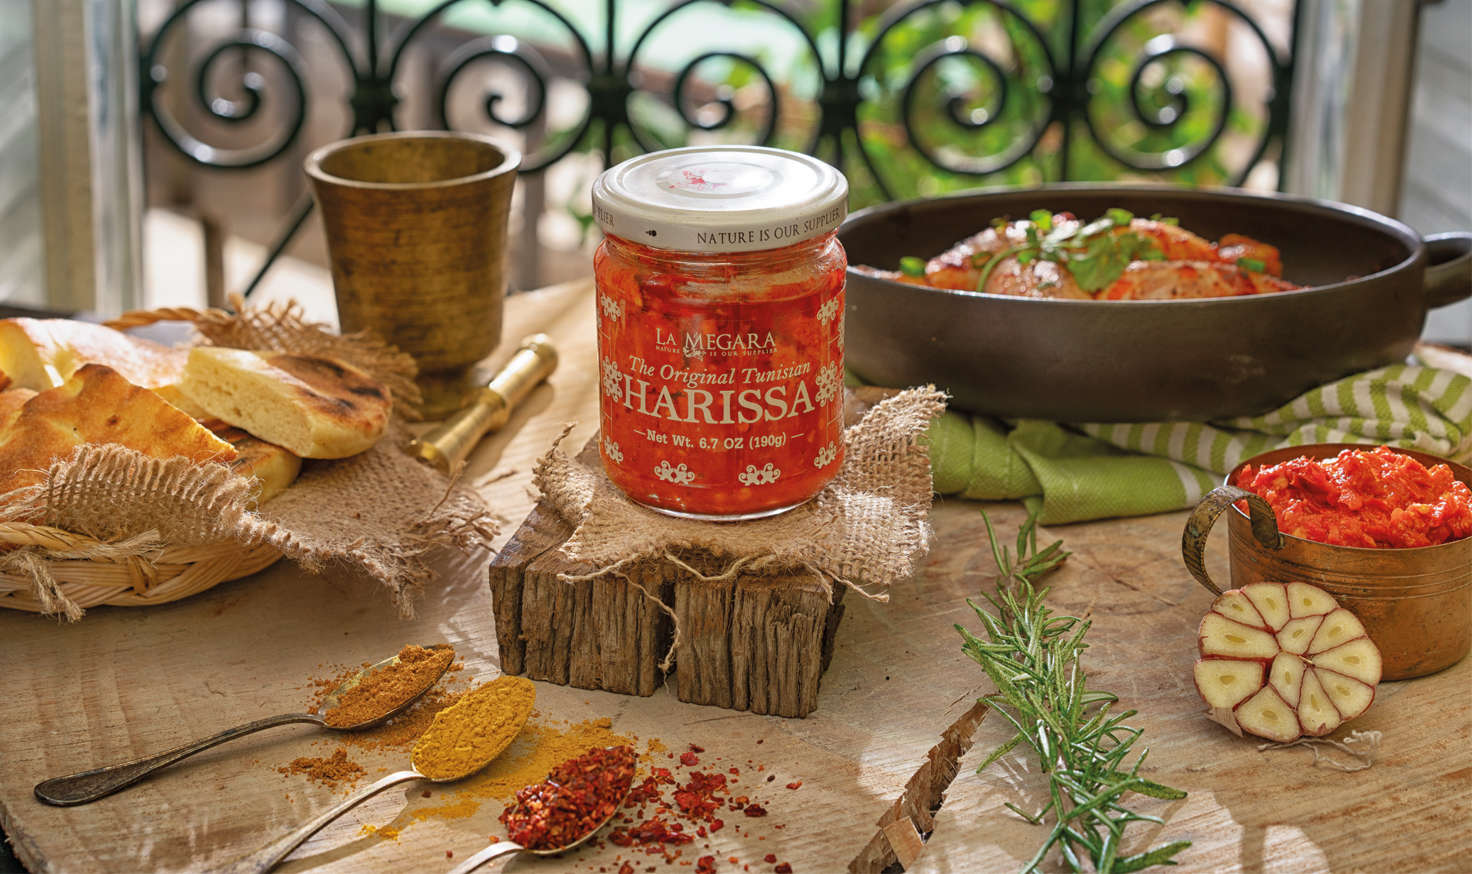 The Original  Tunisian Harissa Background Image